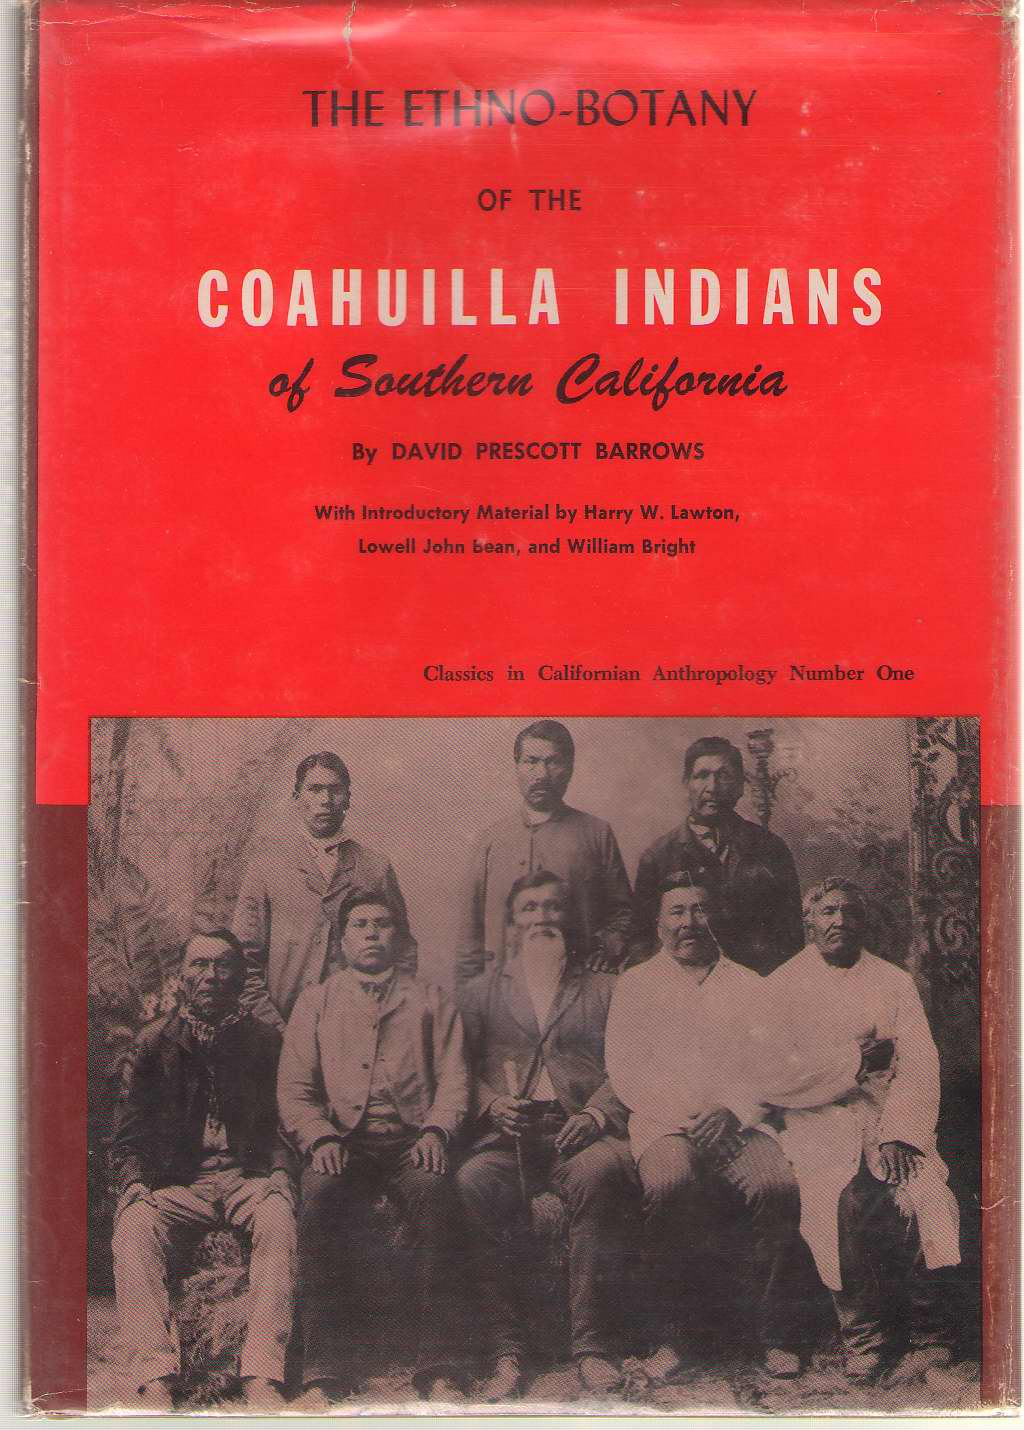 Image for The Ethno-botany Of The Coahuilla Indians Of Southern California Includes a Cahuilla Bibliography